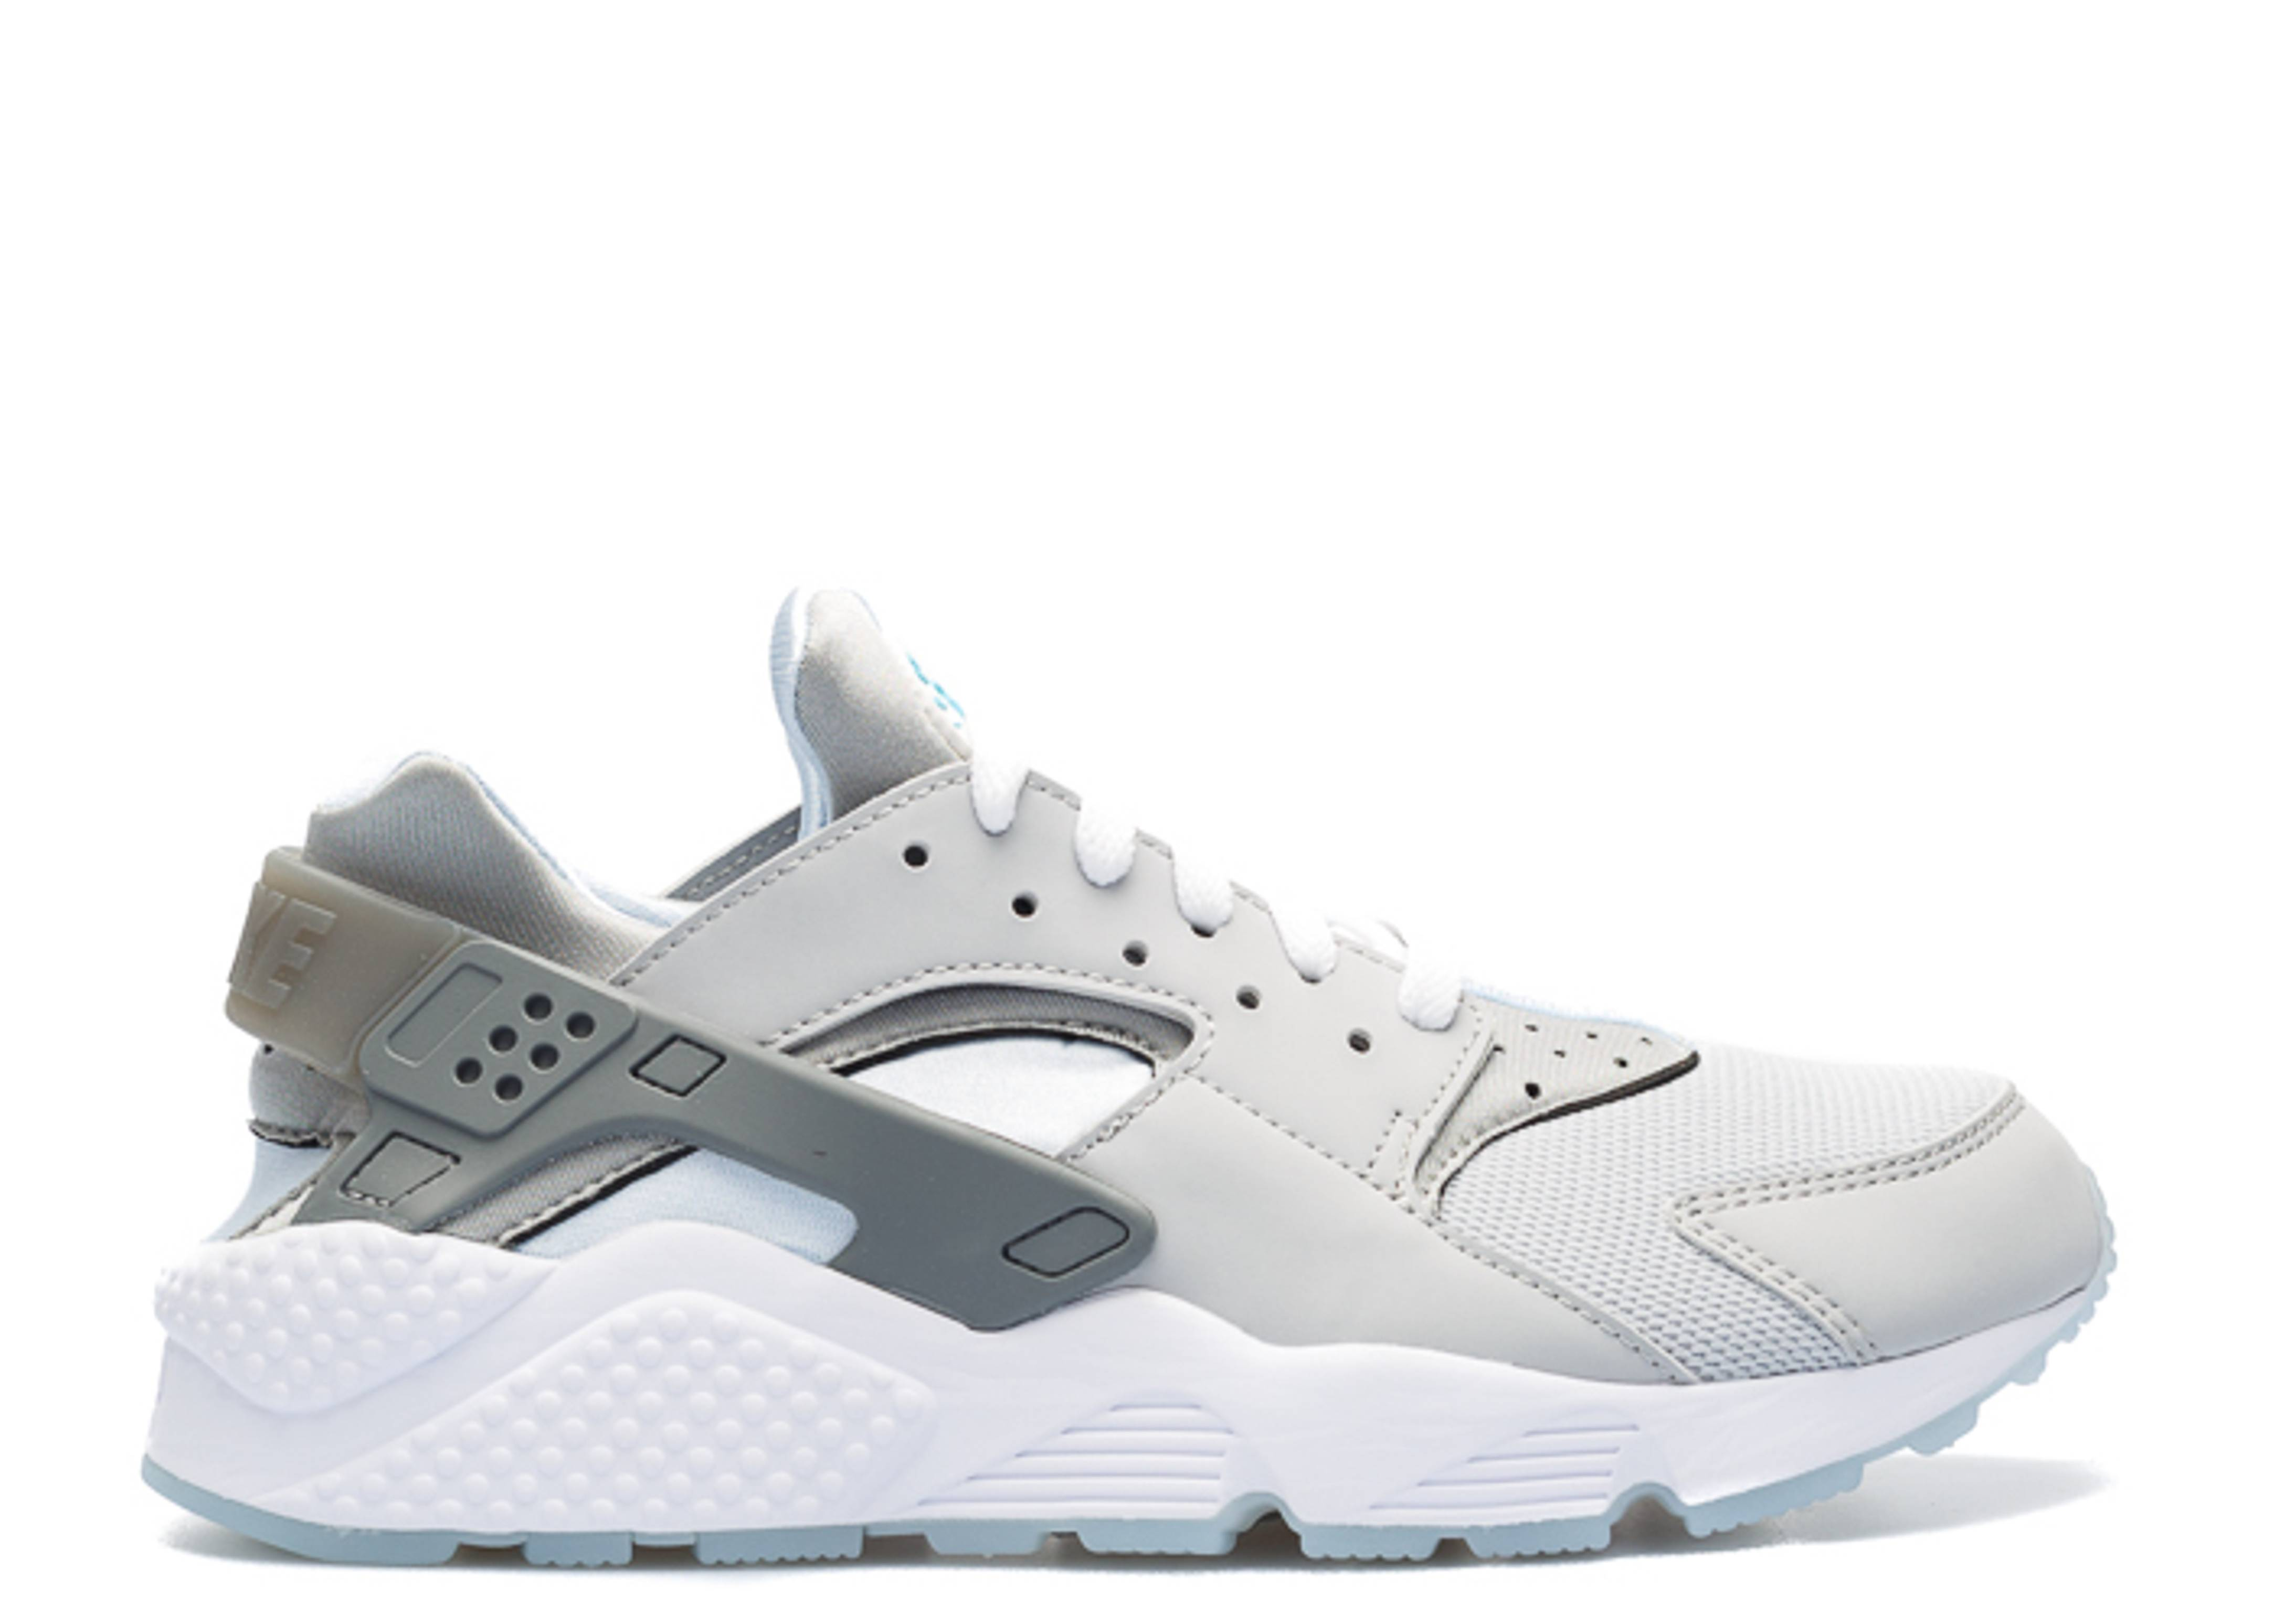 Grey Huarache Bl Wolf Marty Nike 318429 Nvn80mwo Td Mcfly Air 020 Pl dWoeCBrx